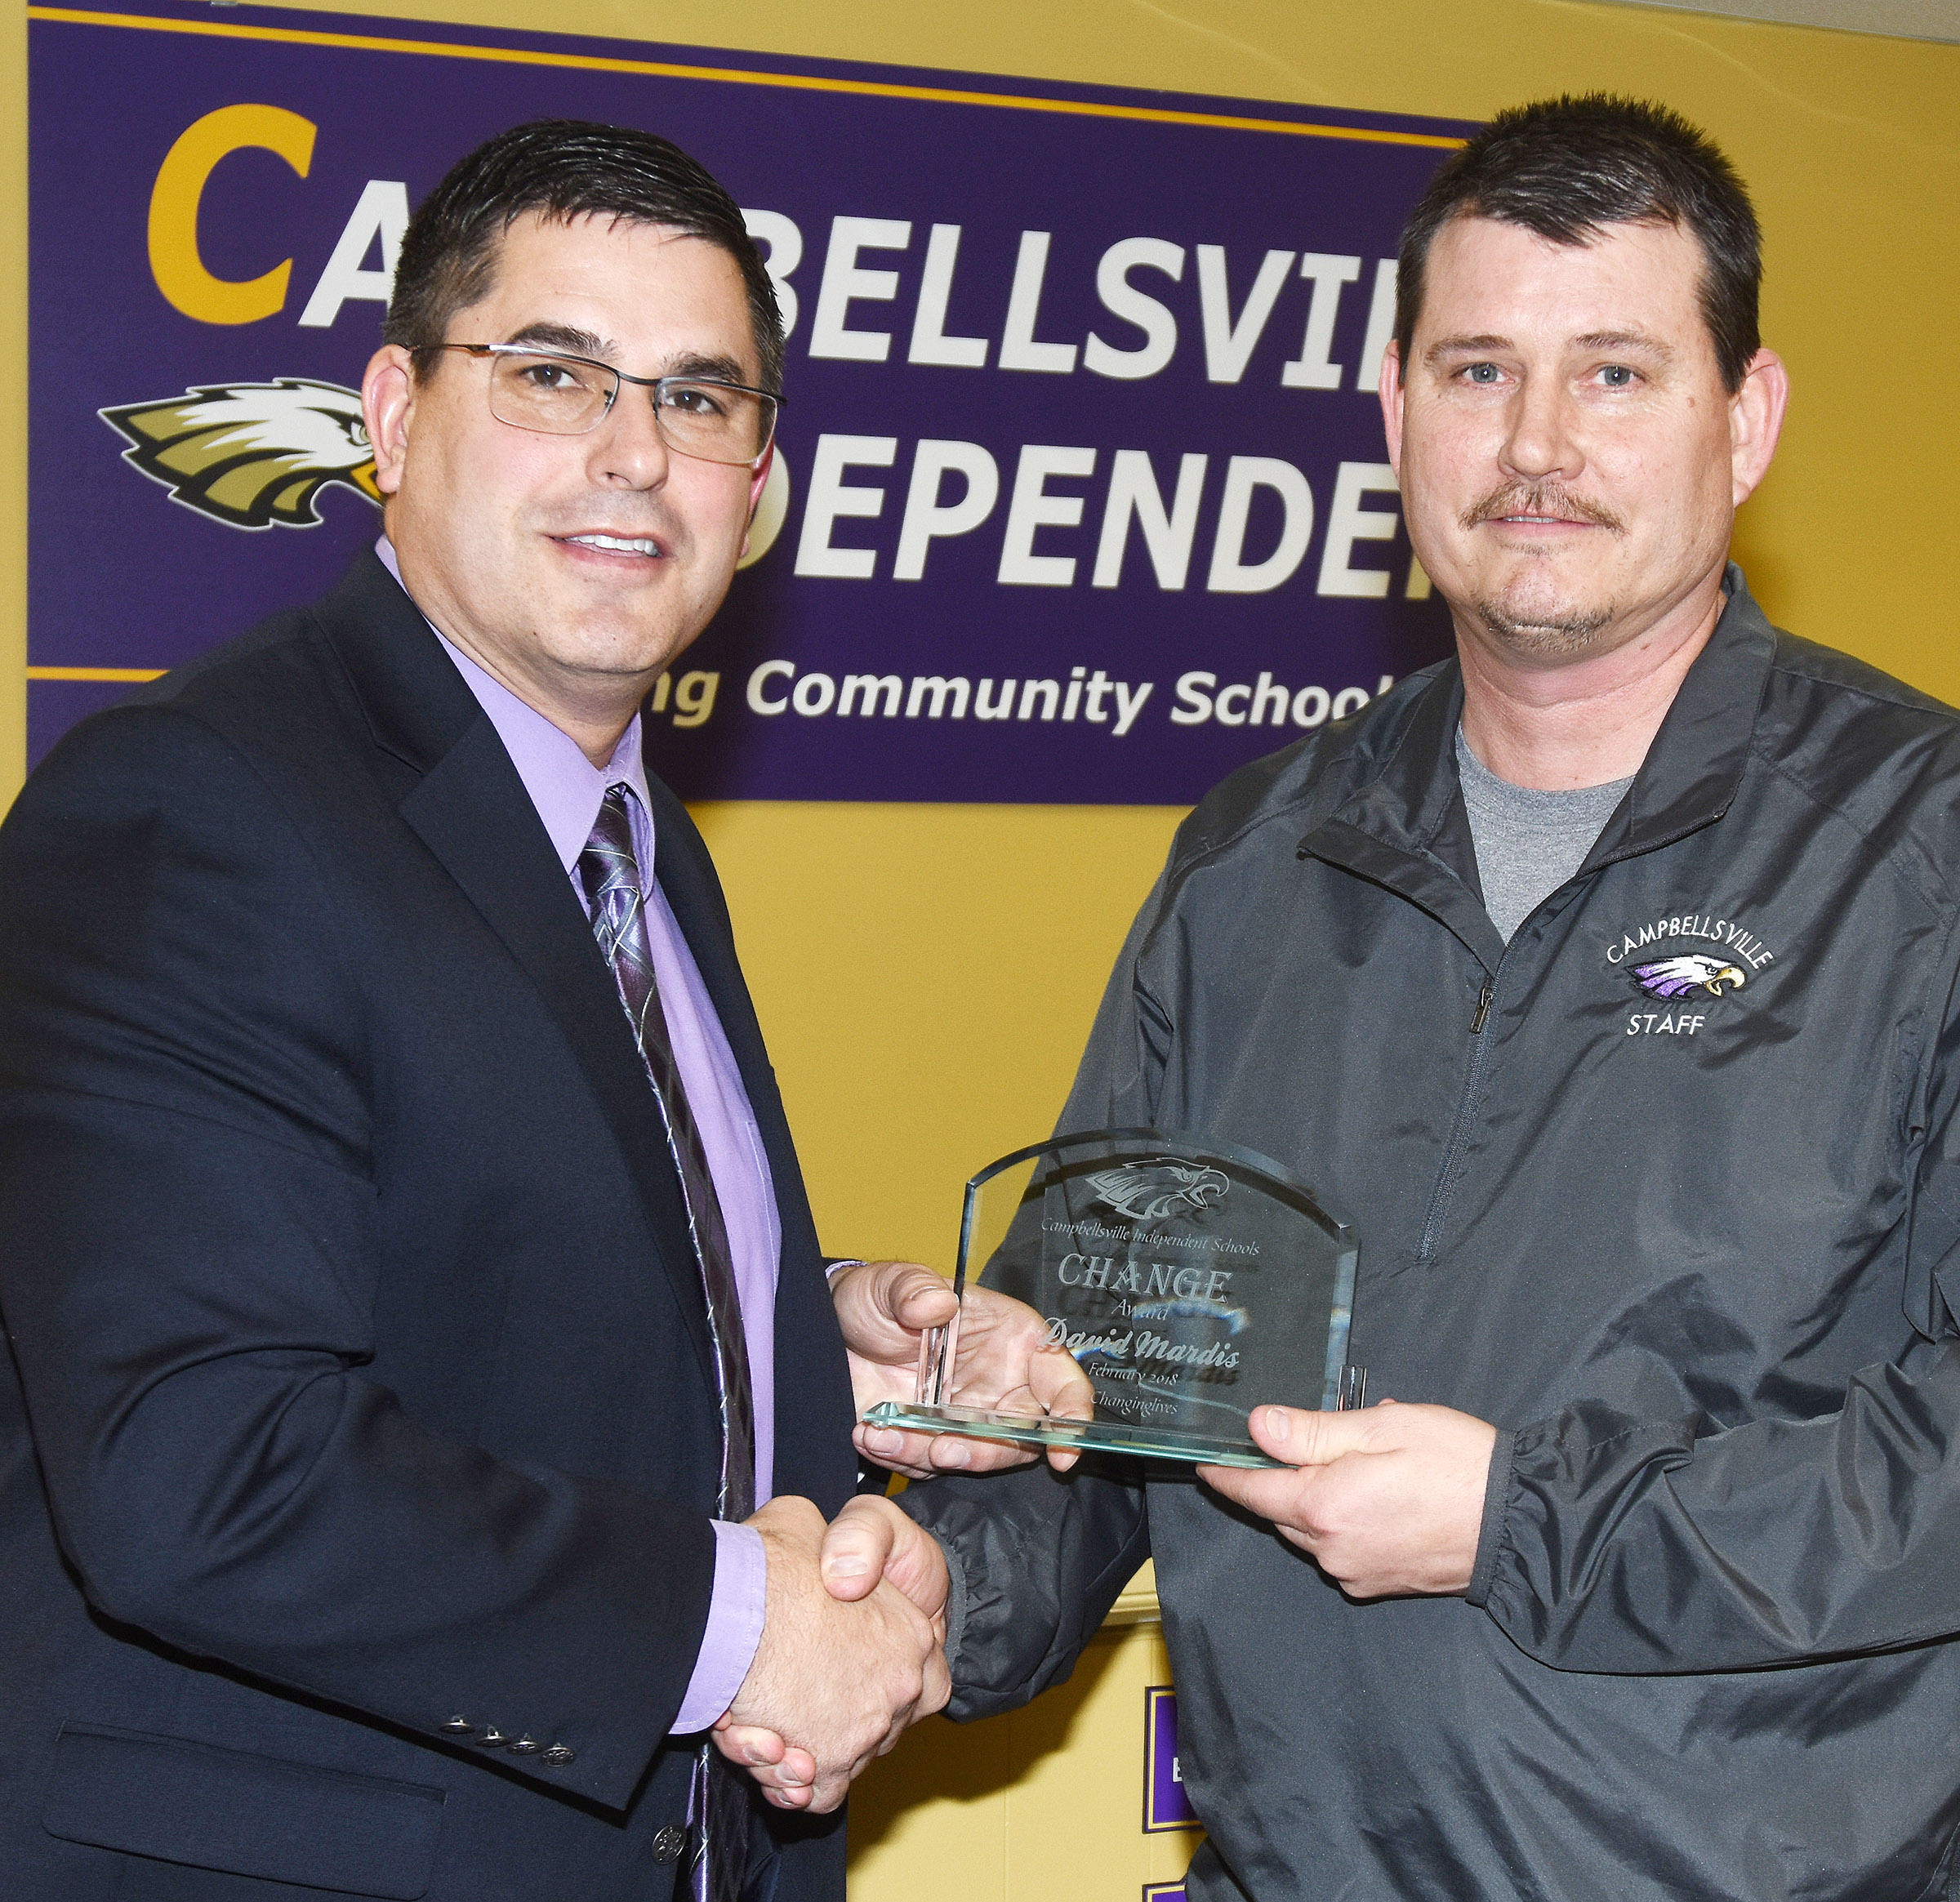 Campbellsville Independent Schools Superintendent Kirby Smith, at left, honors CMS and CHS head custodian David Mardis with the classified Change Award.